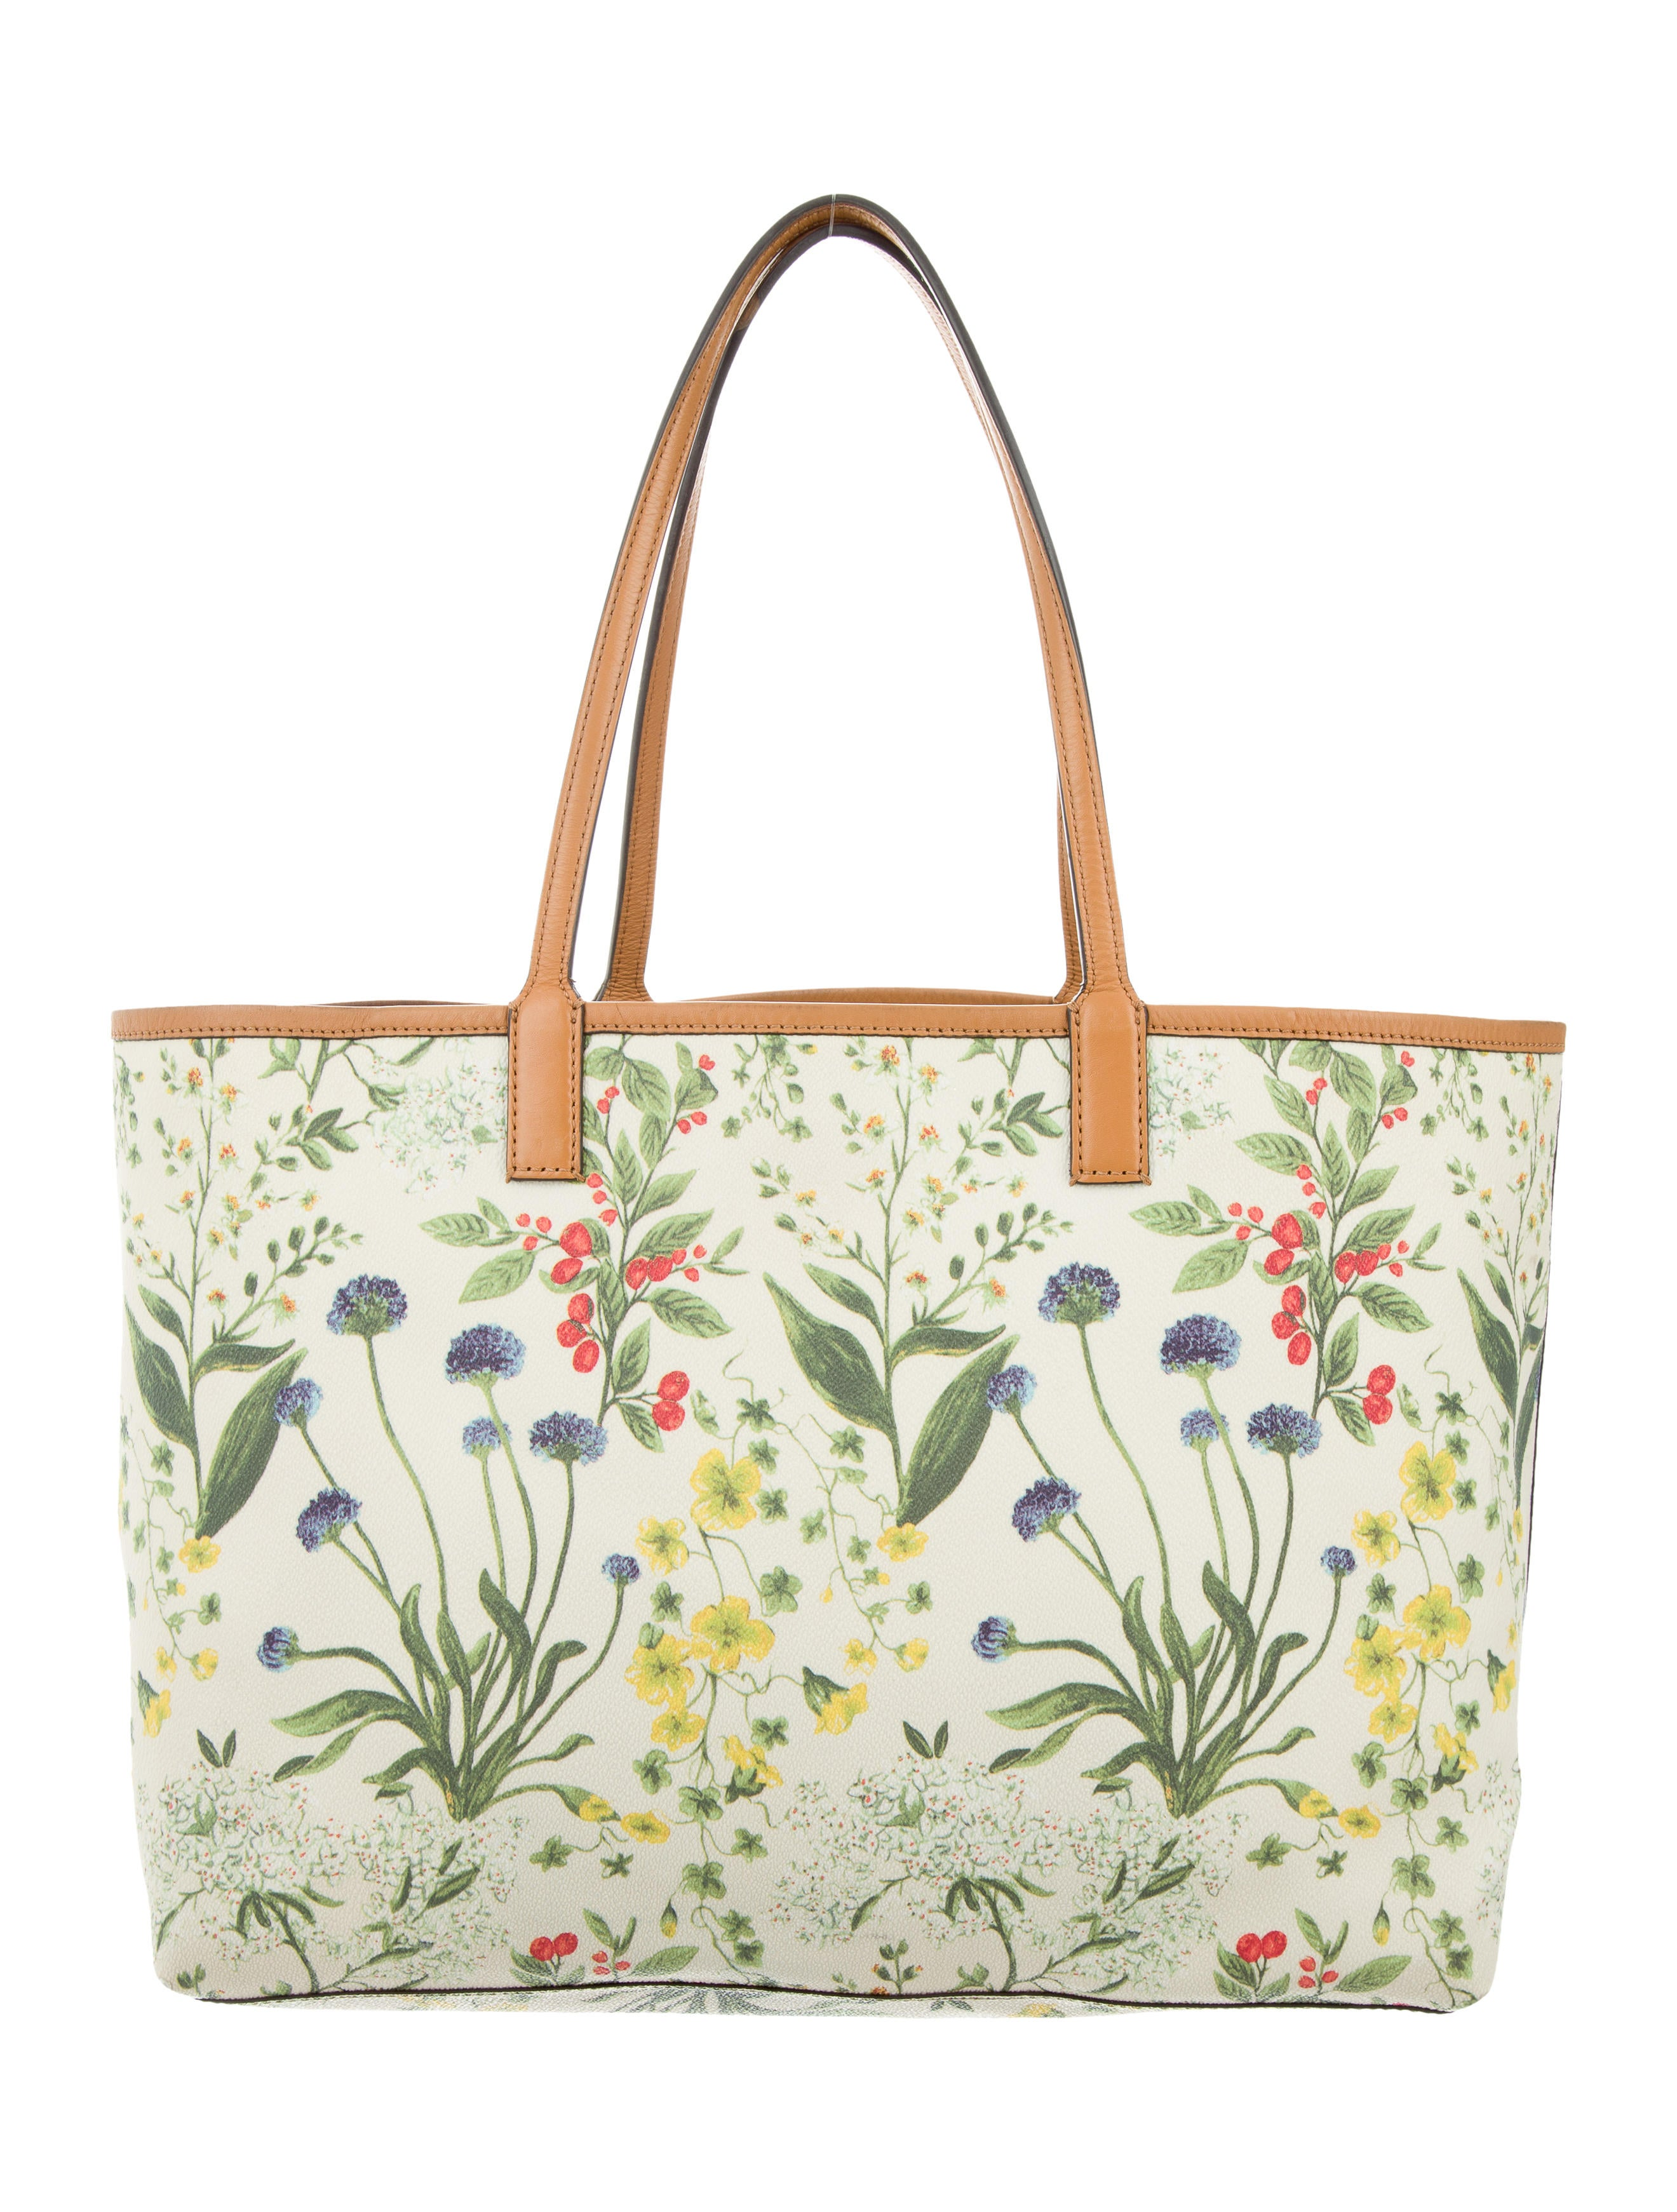 Tory Burch Kerrington Floral-Print Shopper Bag - Handbags - WTO102244 | The RealReal